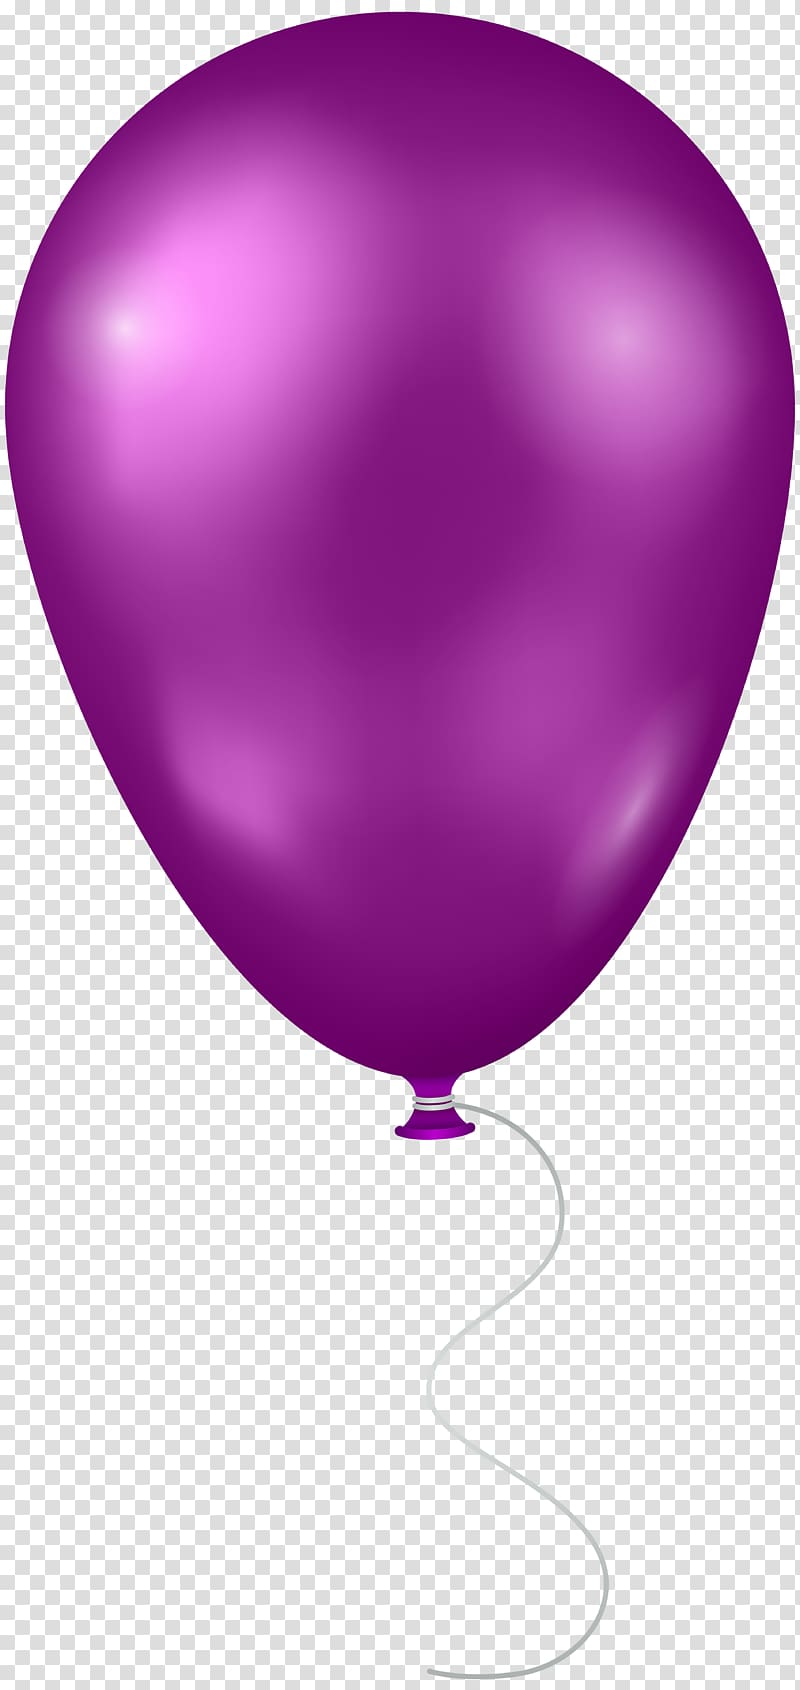 Lavender and rose gold balloon background clipart picture library download Purple balloon , Balloon Heart, Purple Balloon transparent ... picture library download